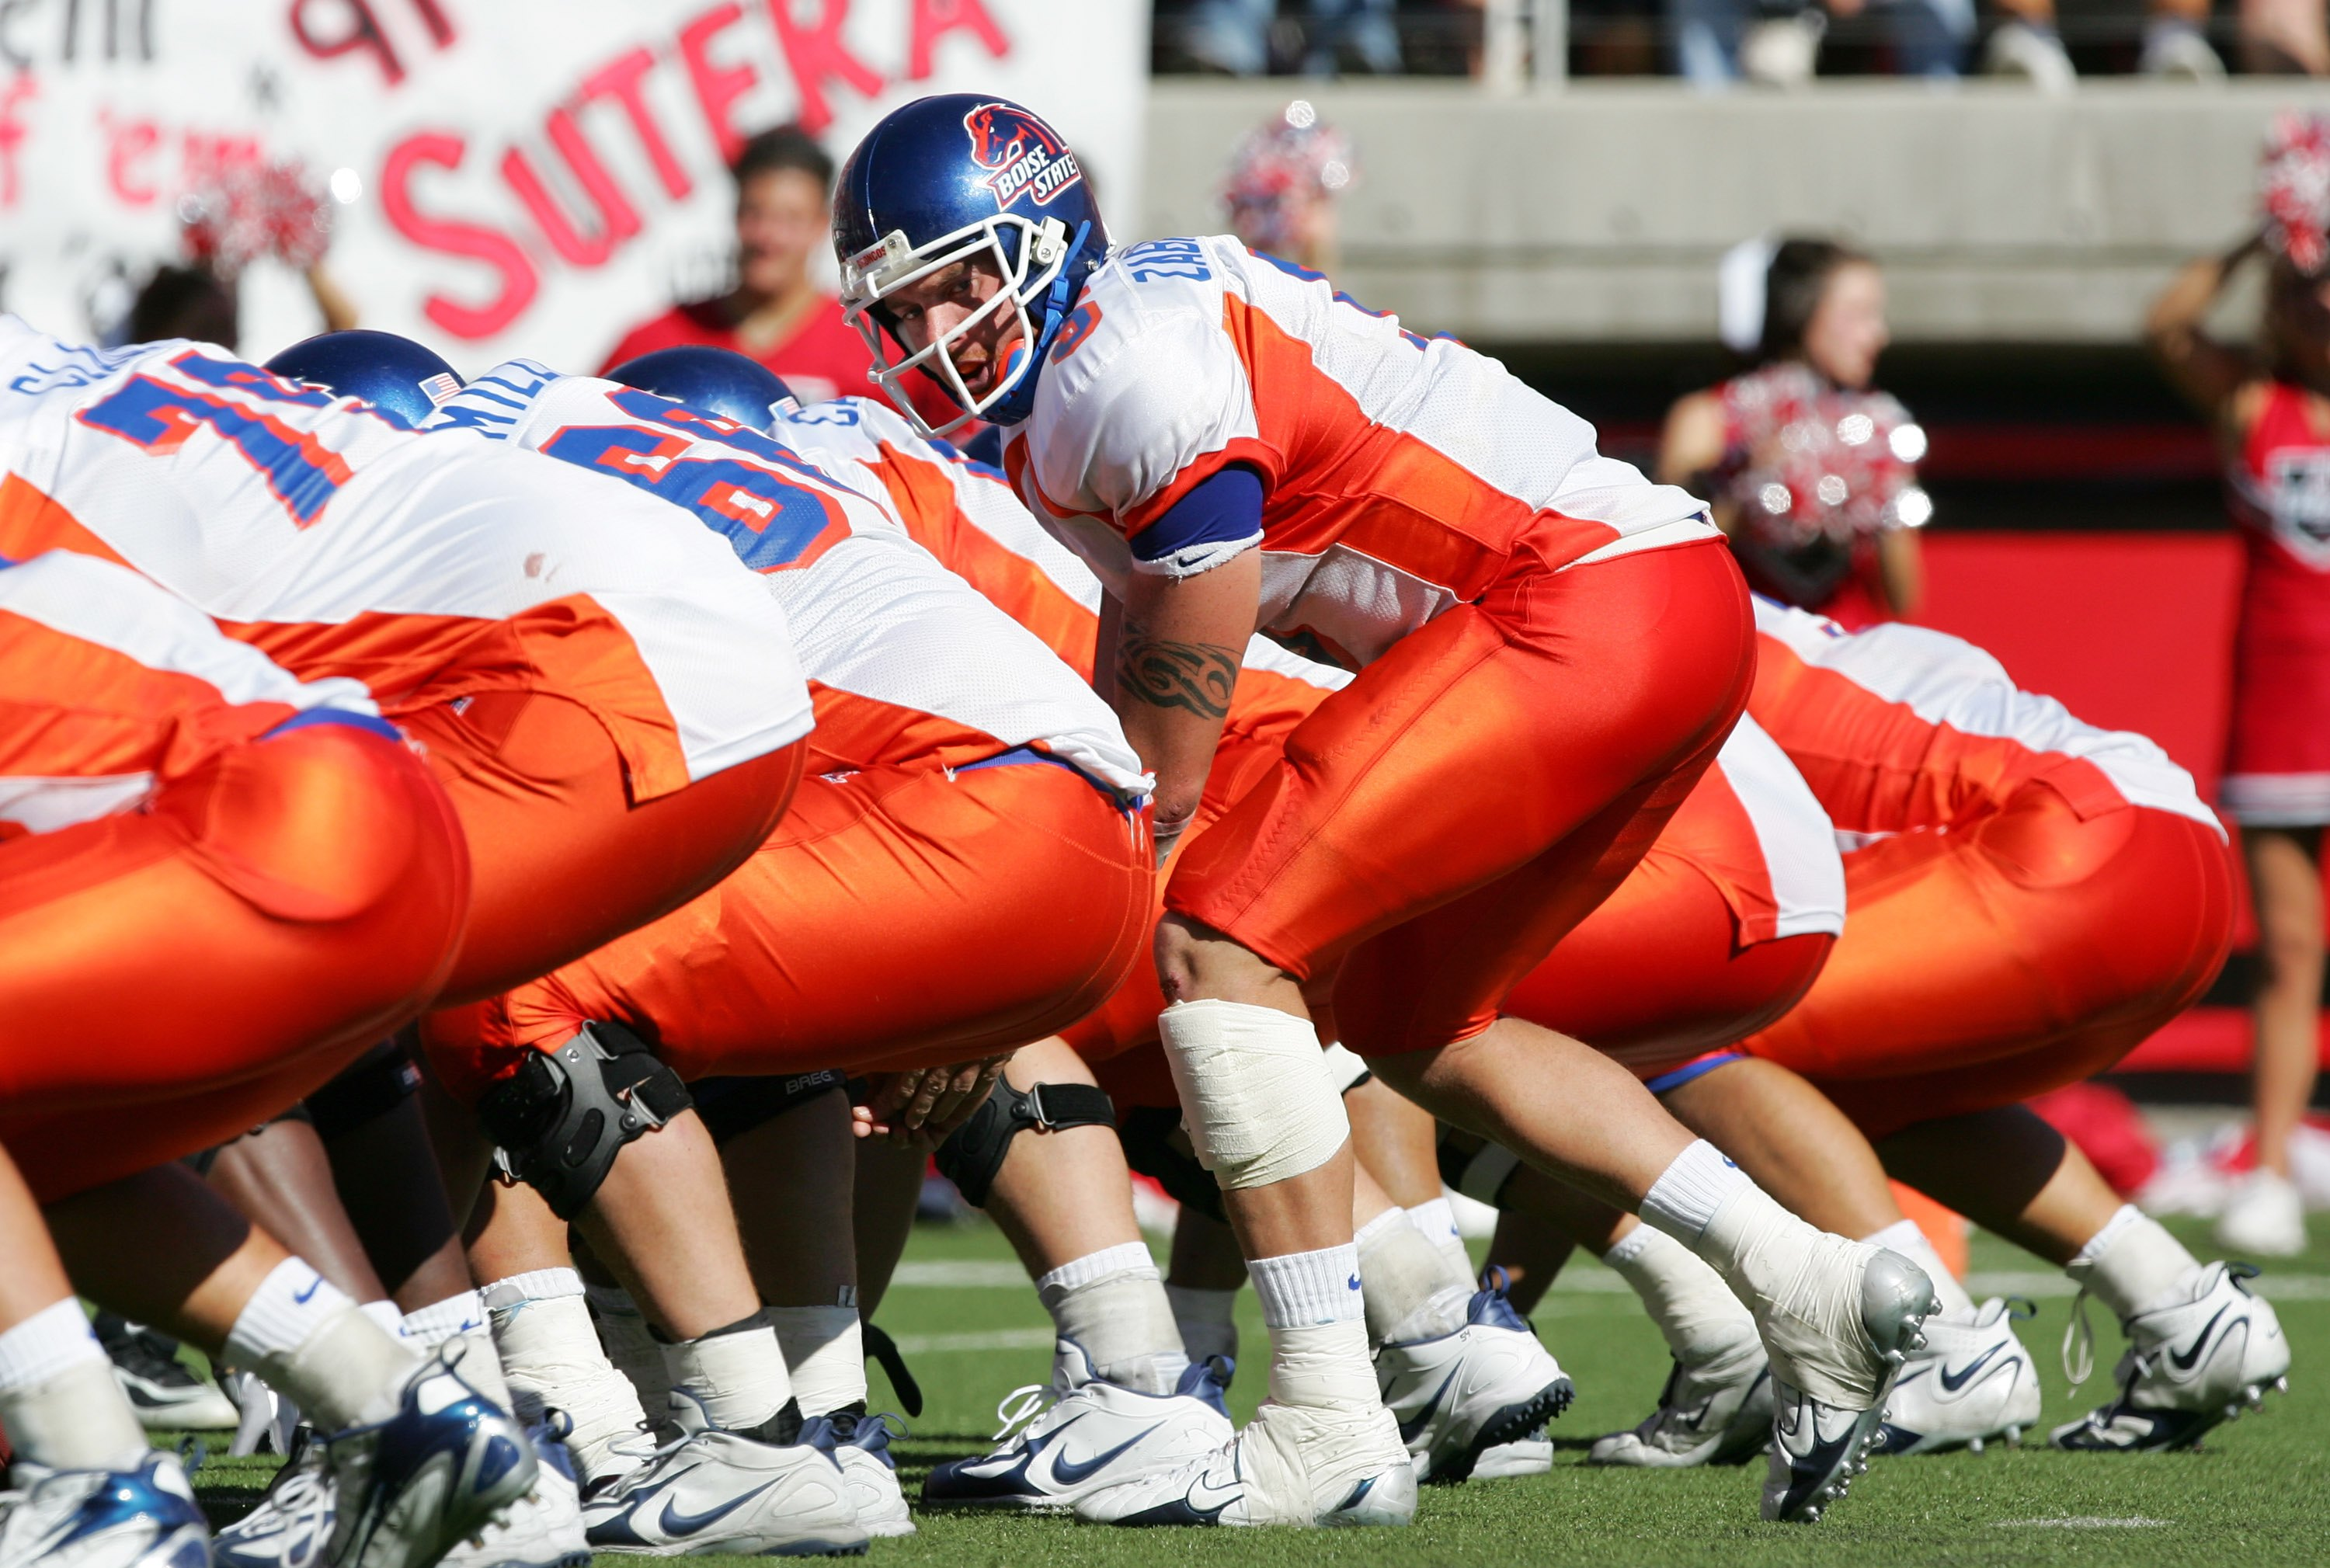 SALT LAKE CITY - SEPTEMBER 30:   Quarterback Jared Zabransky #5 of the Boise State Broncos gets ready to snap the ball  against the Utah Utes at Rice-Eccles Stadium on September 30, 2006 in Salt Lake City, Utah. The Broncos of Boise State beat the Utes of